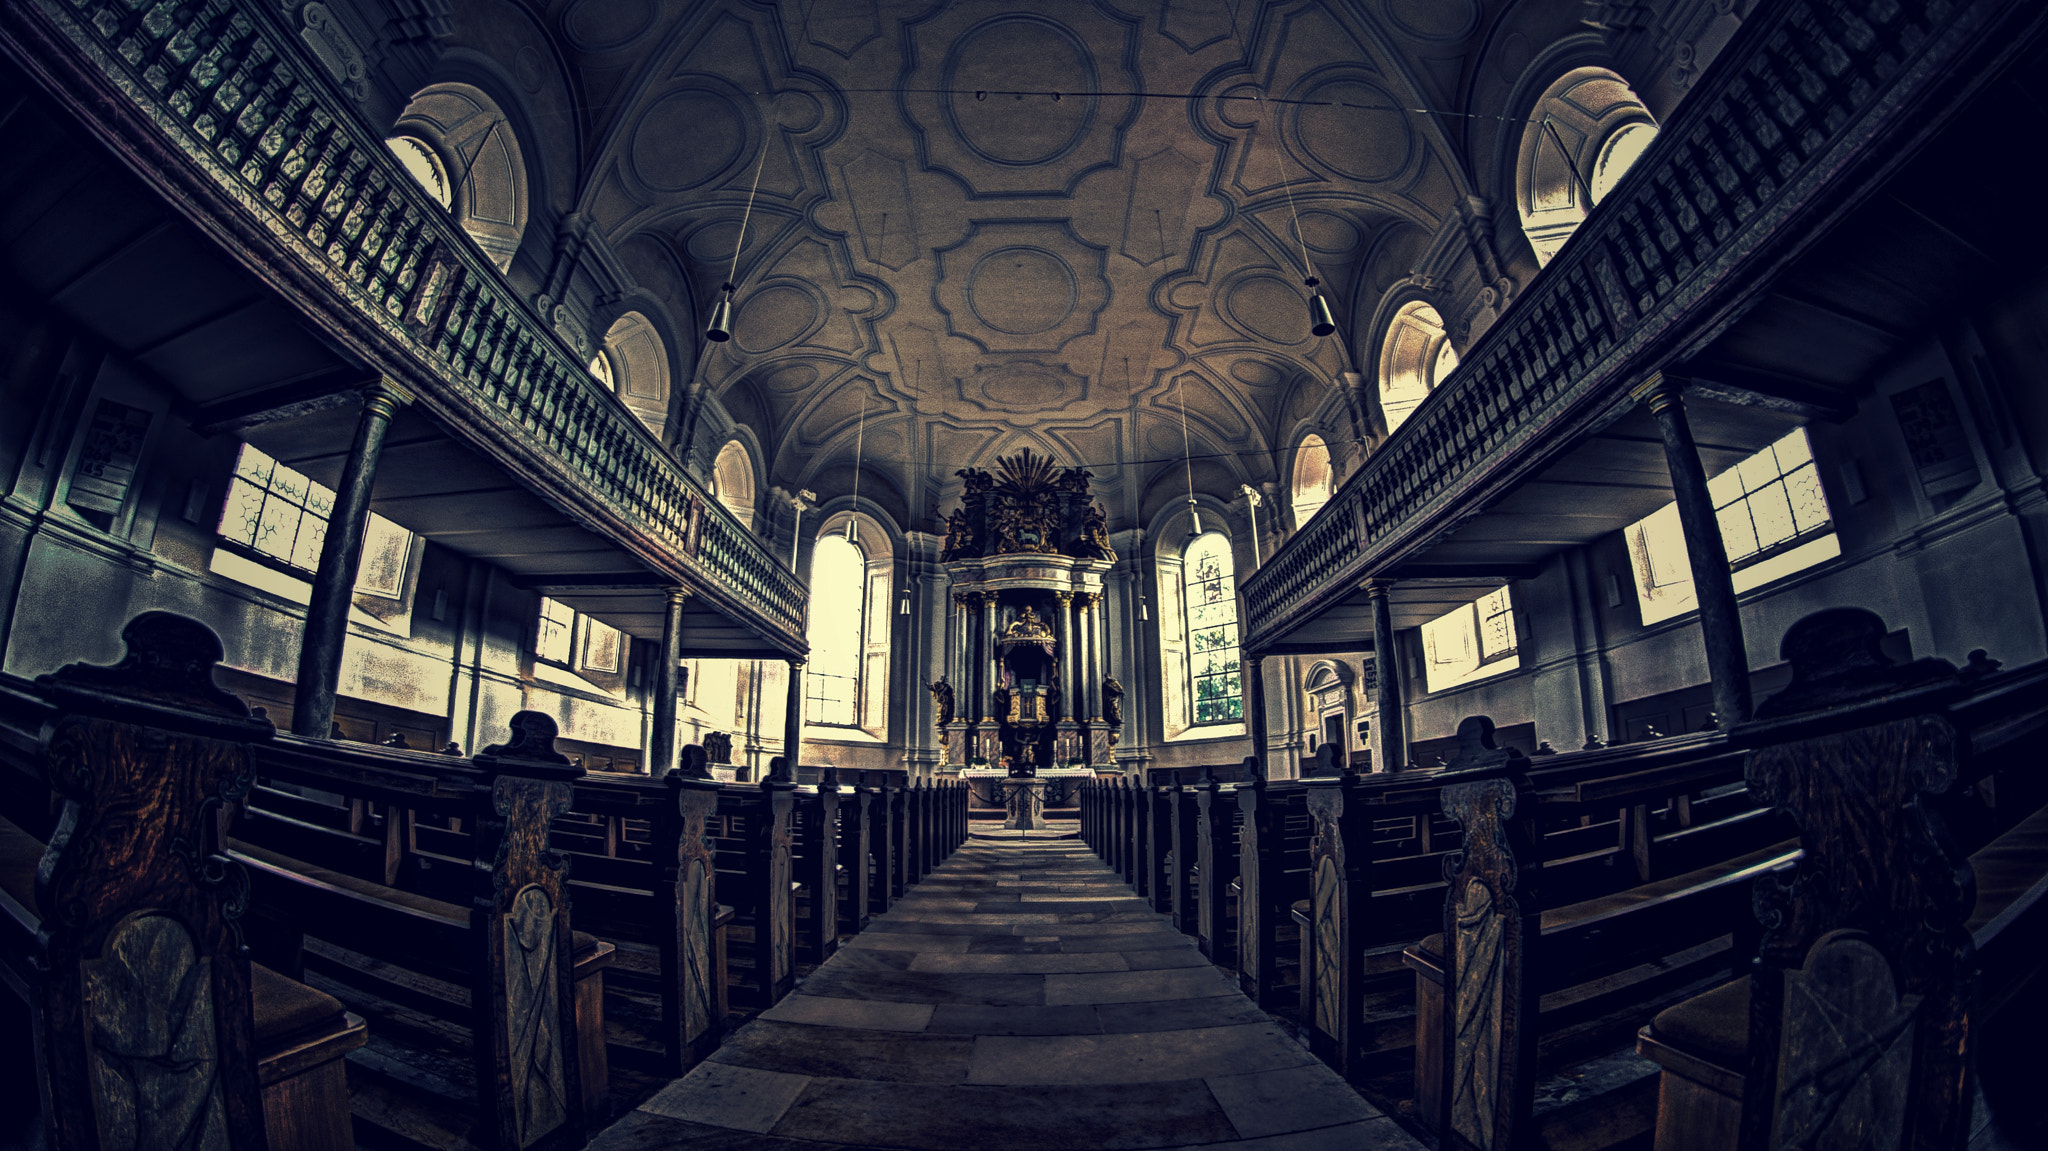 Photograph over at jesus' place by Matthias Koebrich on 500px